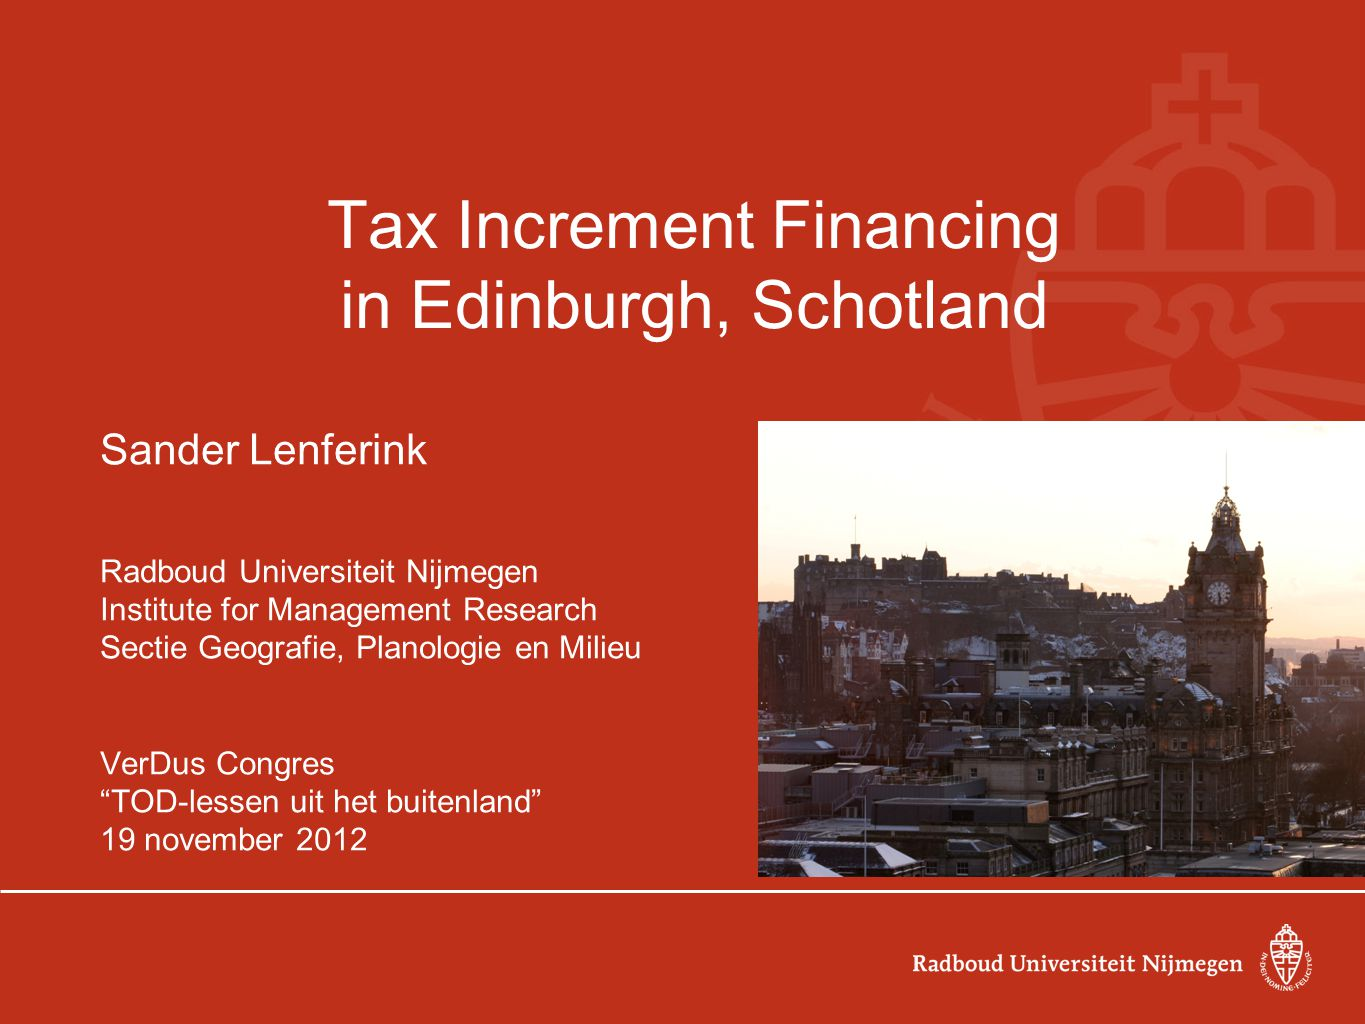 Tax Increment Financing in Edinburgh, Schotland